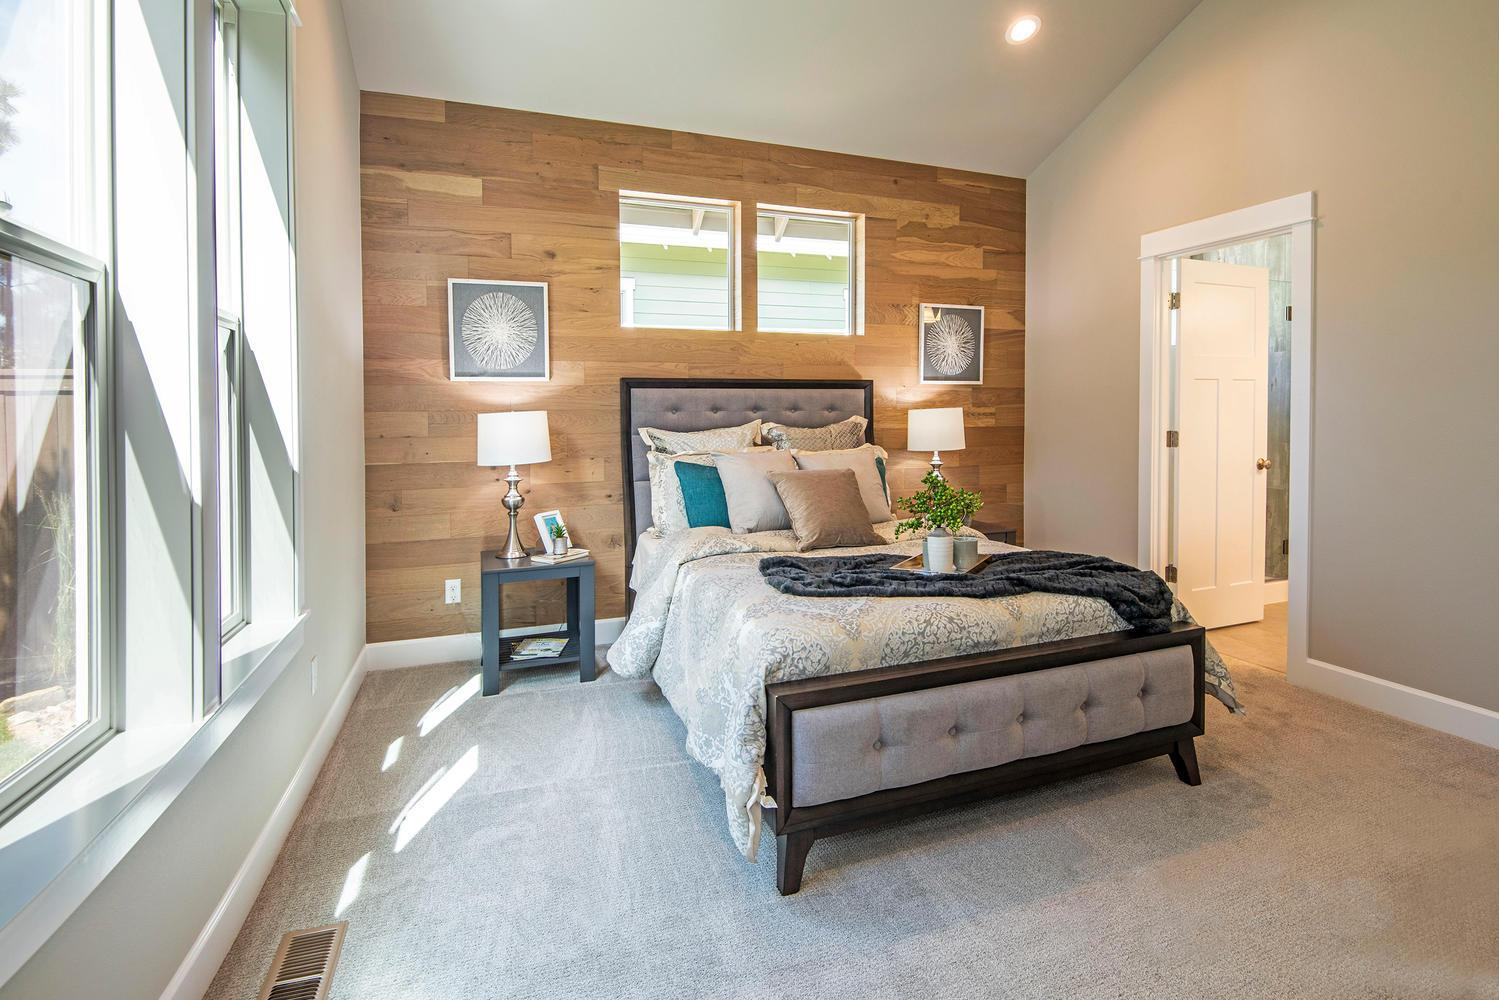 Bedroom featured in The Cedar By Woodhill Homes in Central Oregon, OR